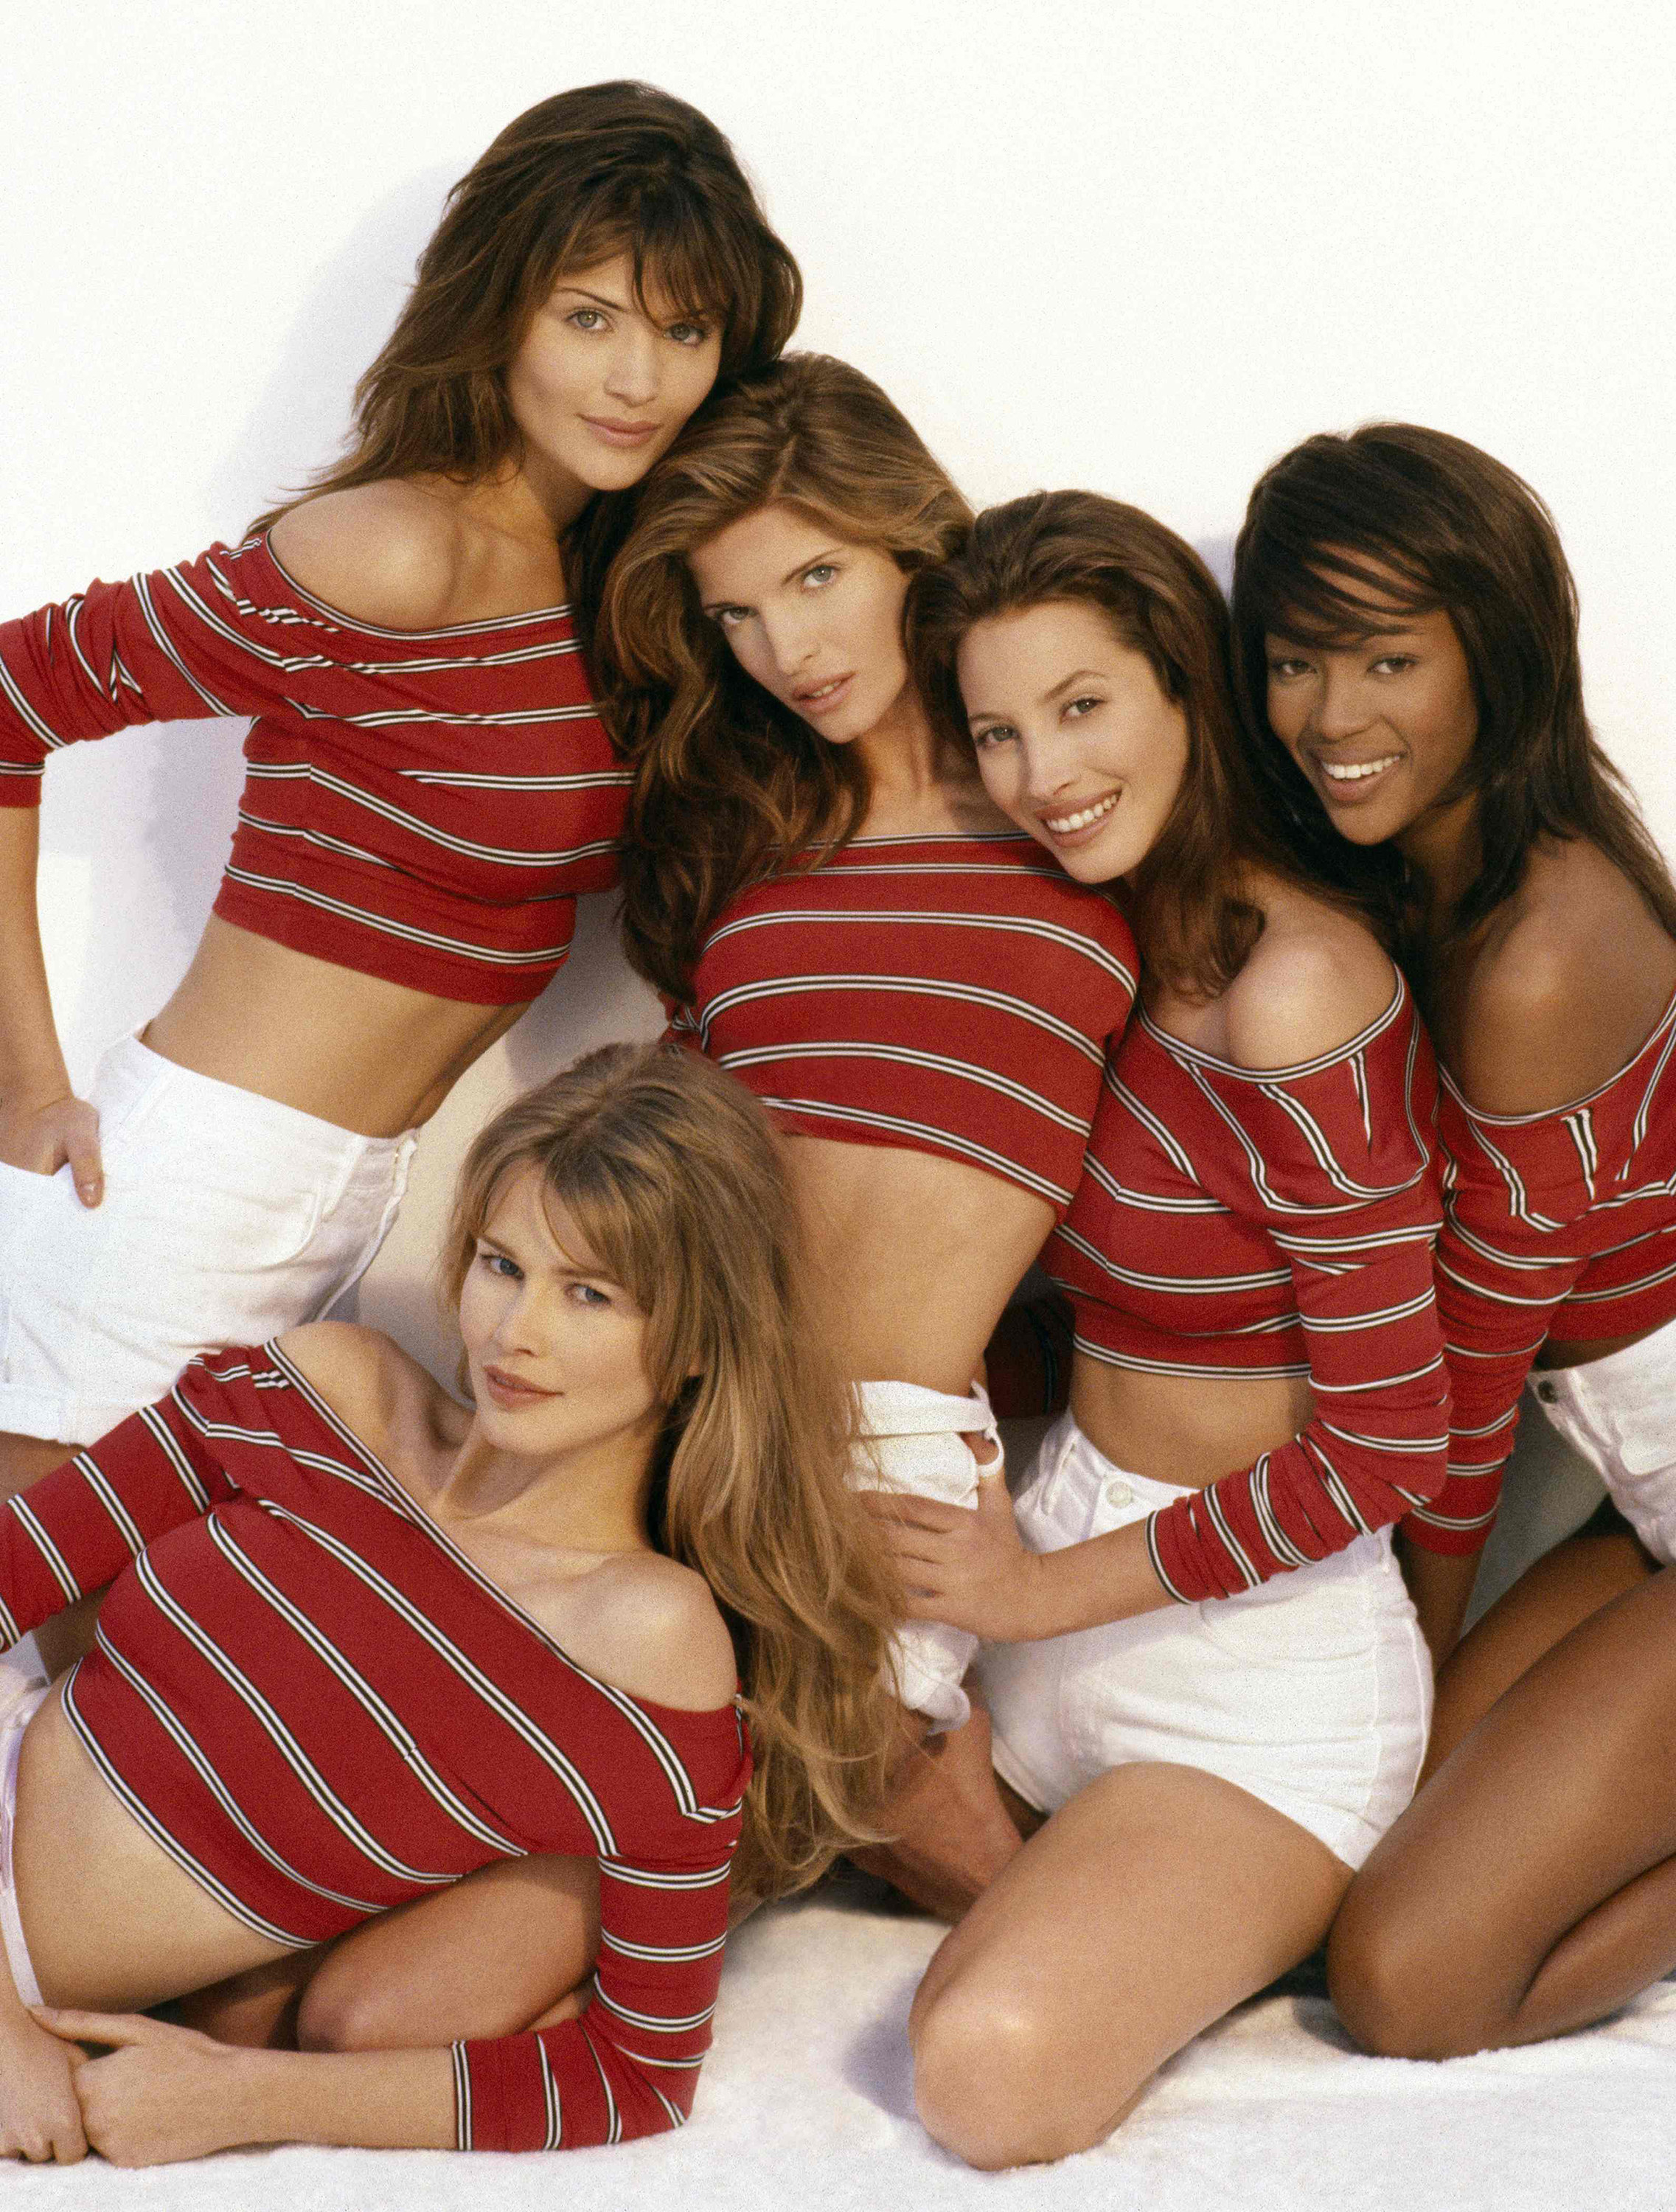 Helena Christensen, Claudia Schiffer, Stephanie Seymour, Christy Turlington, Naomi Campbell in striped shirts and shorts on a plush rug, looking at the camera